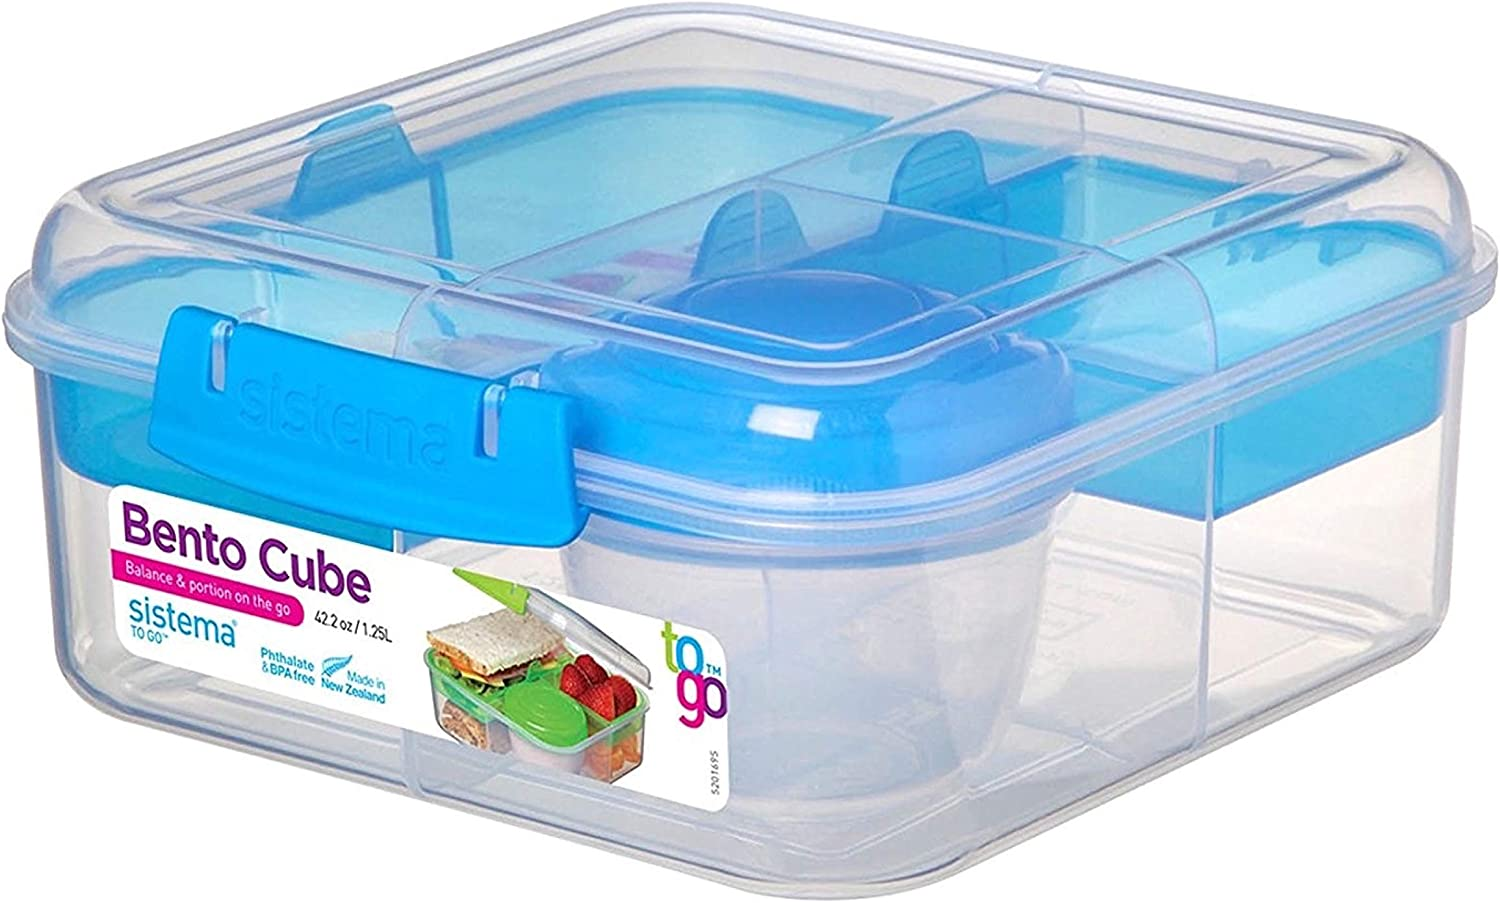 Sistema To Go Collection Bento Box Cube Plastic Lunch and Food Storage Container, 5.3 Cup, Multi-Compartment, Color Varies | BPA Free